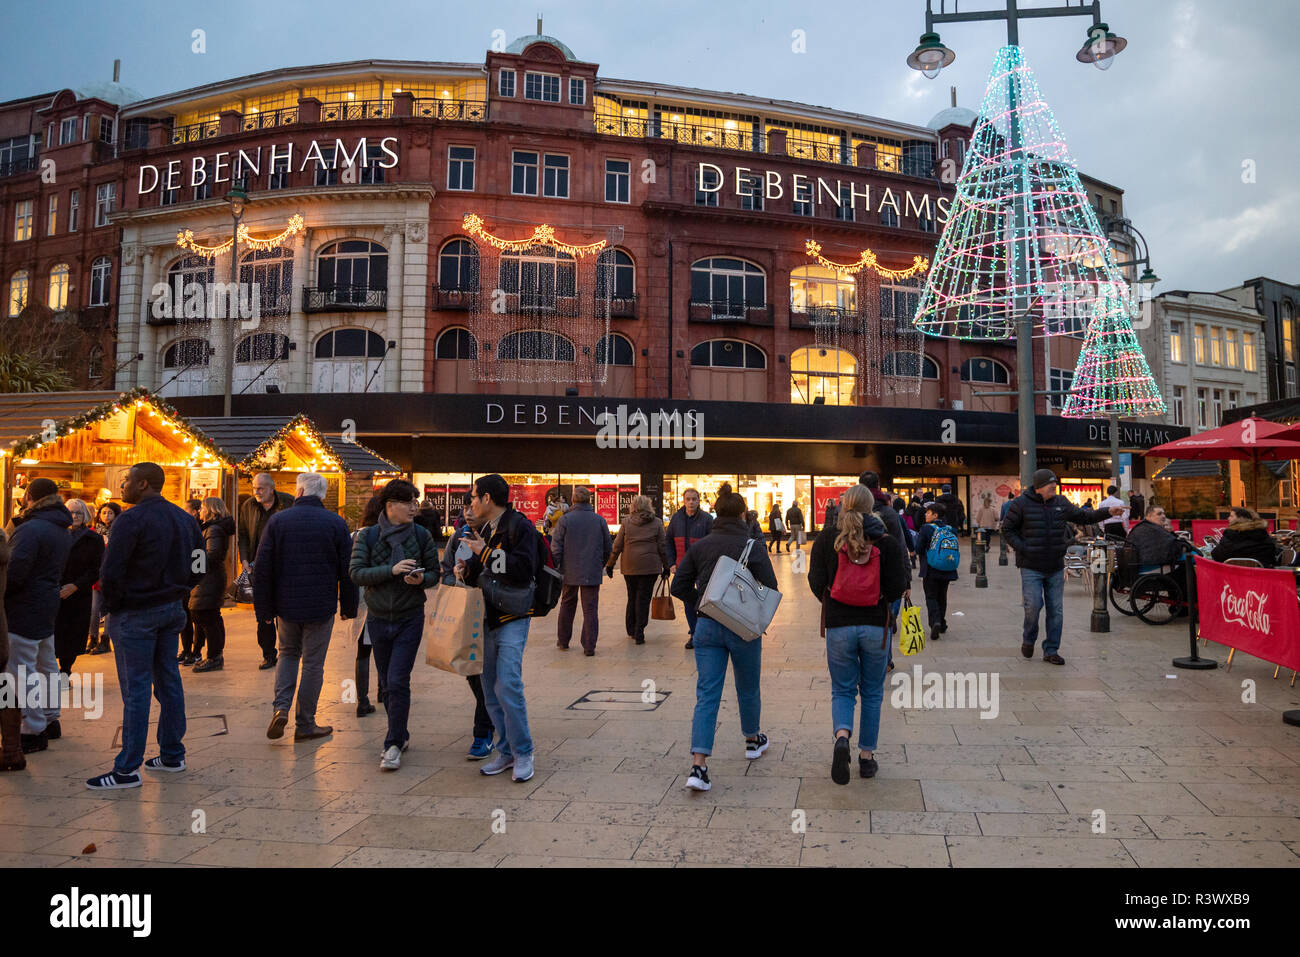 Christmas Markets In Dorset 2021 Festive Scene With Shoppers And A Christmas Market The Square Bournemouth Dorset Uk Outside Debenhams Department Store Stock Photo Alamy